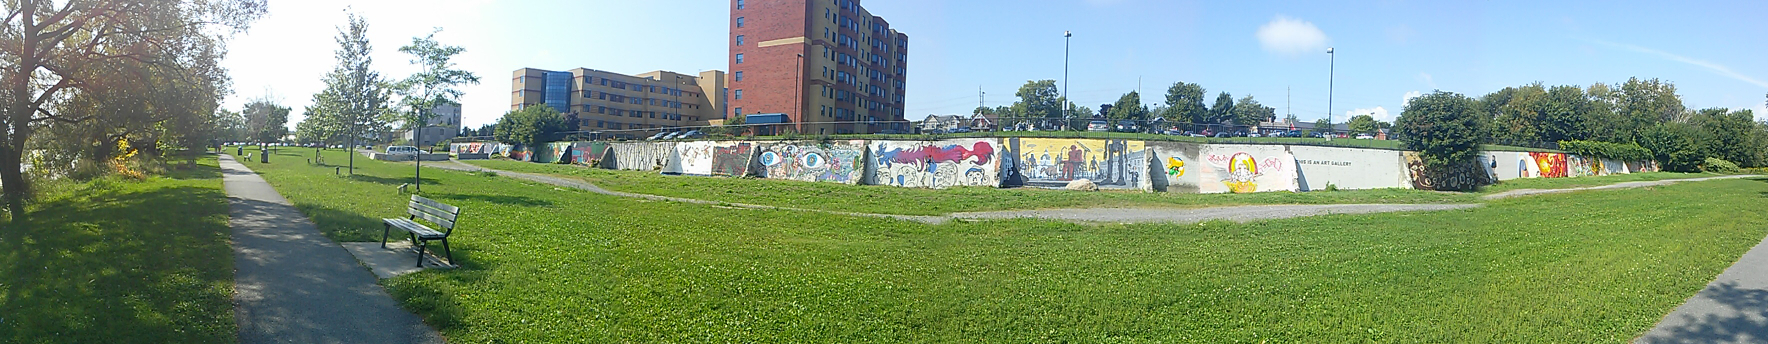 wallpanoramic2